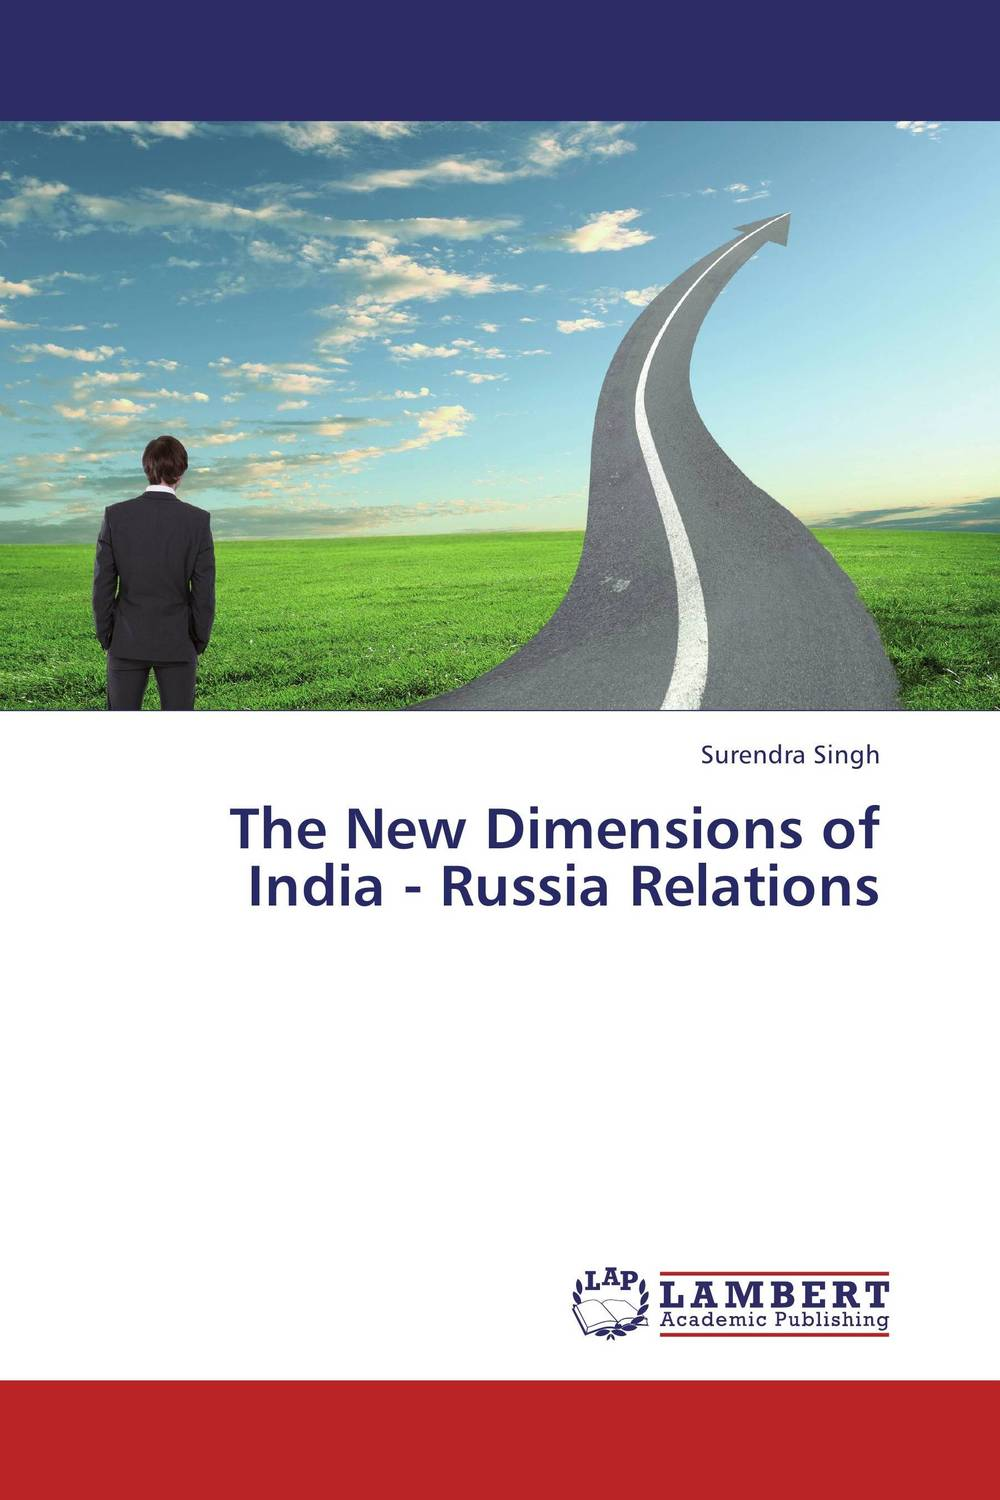 The New Dimensions of India - Russia Relations russian phrase book